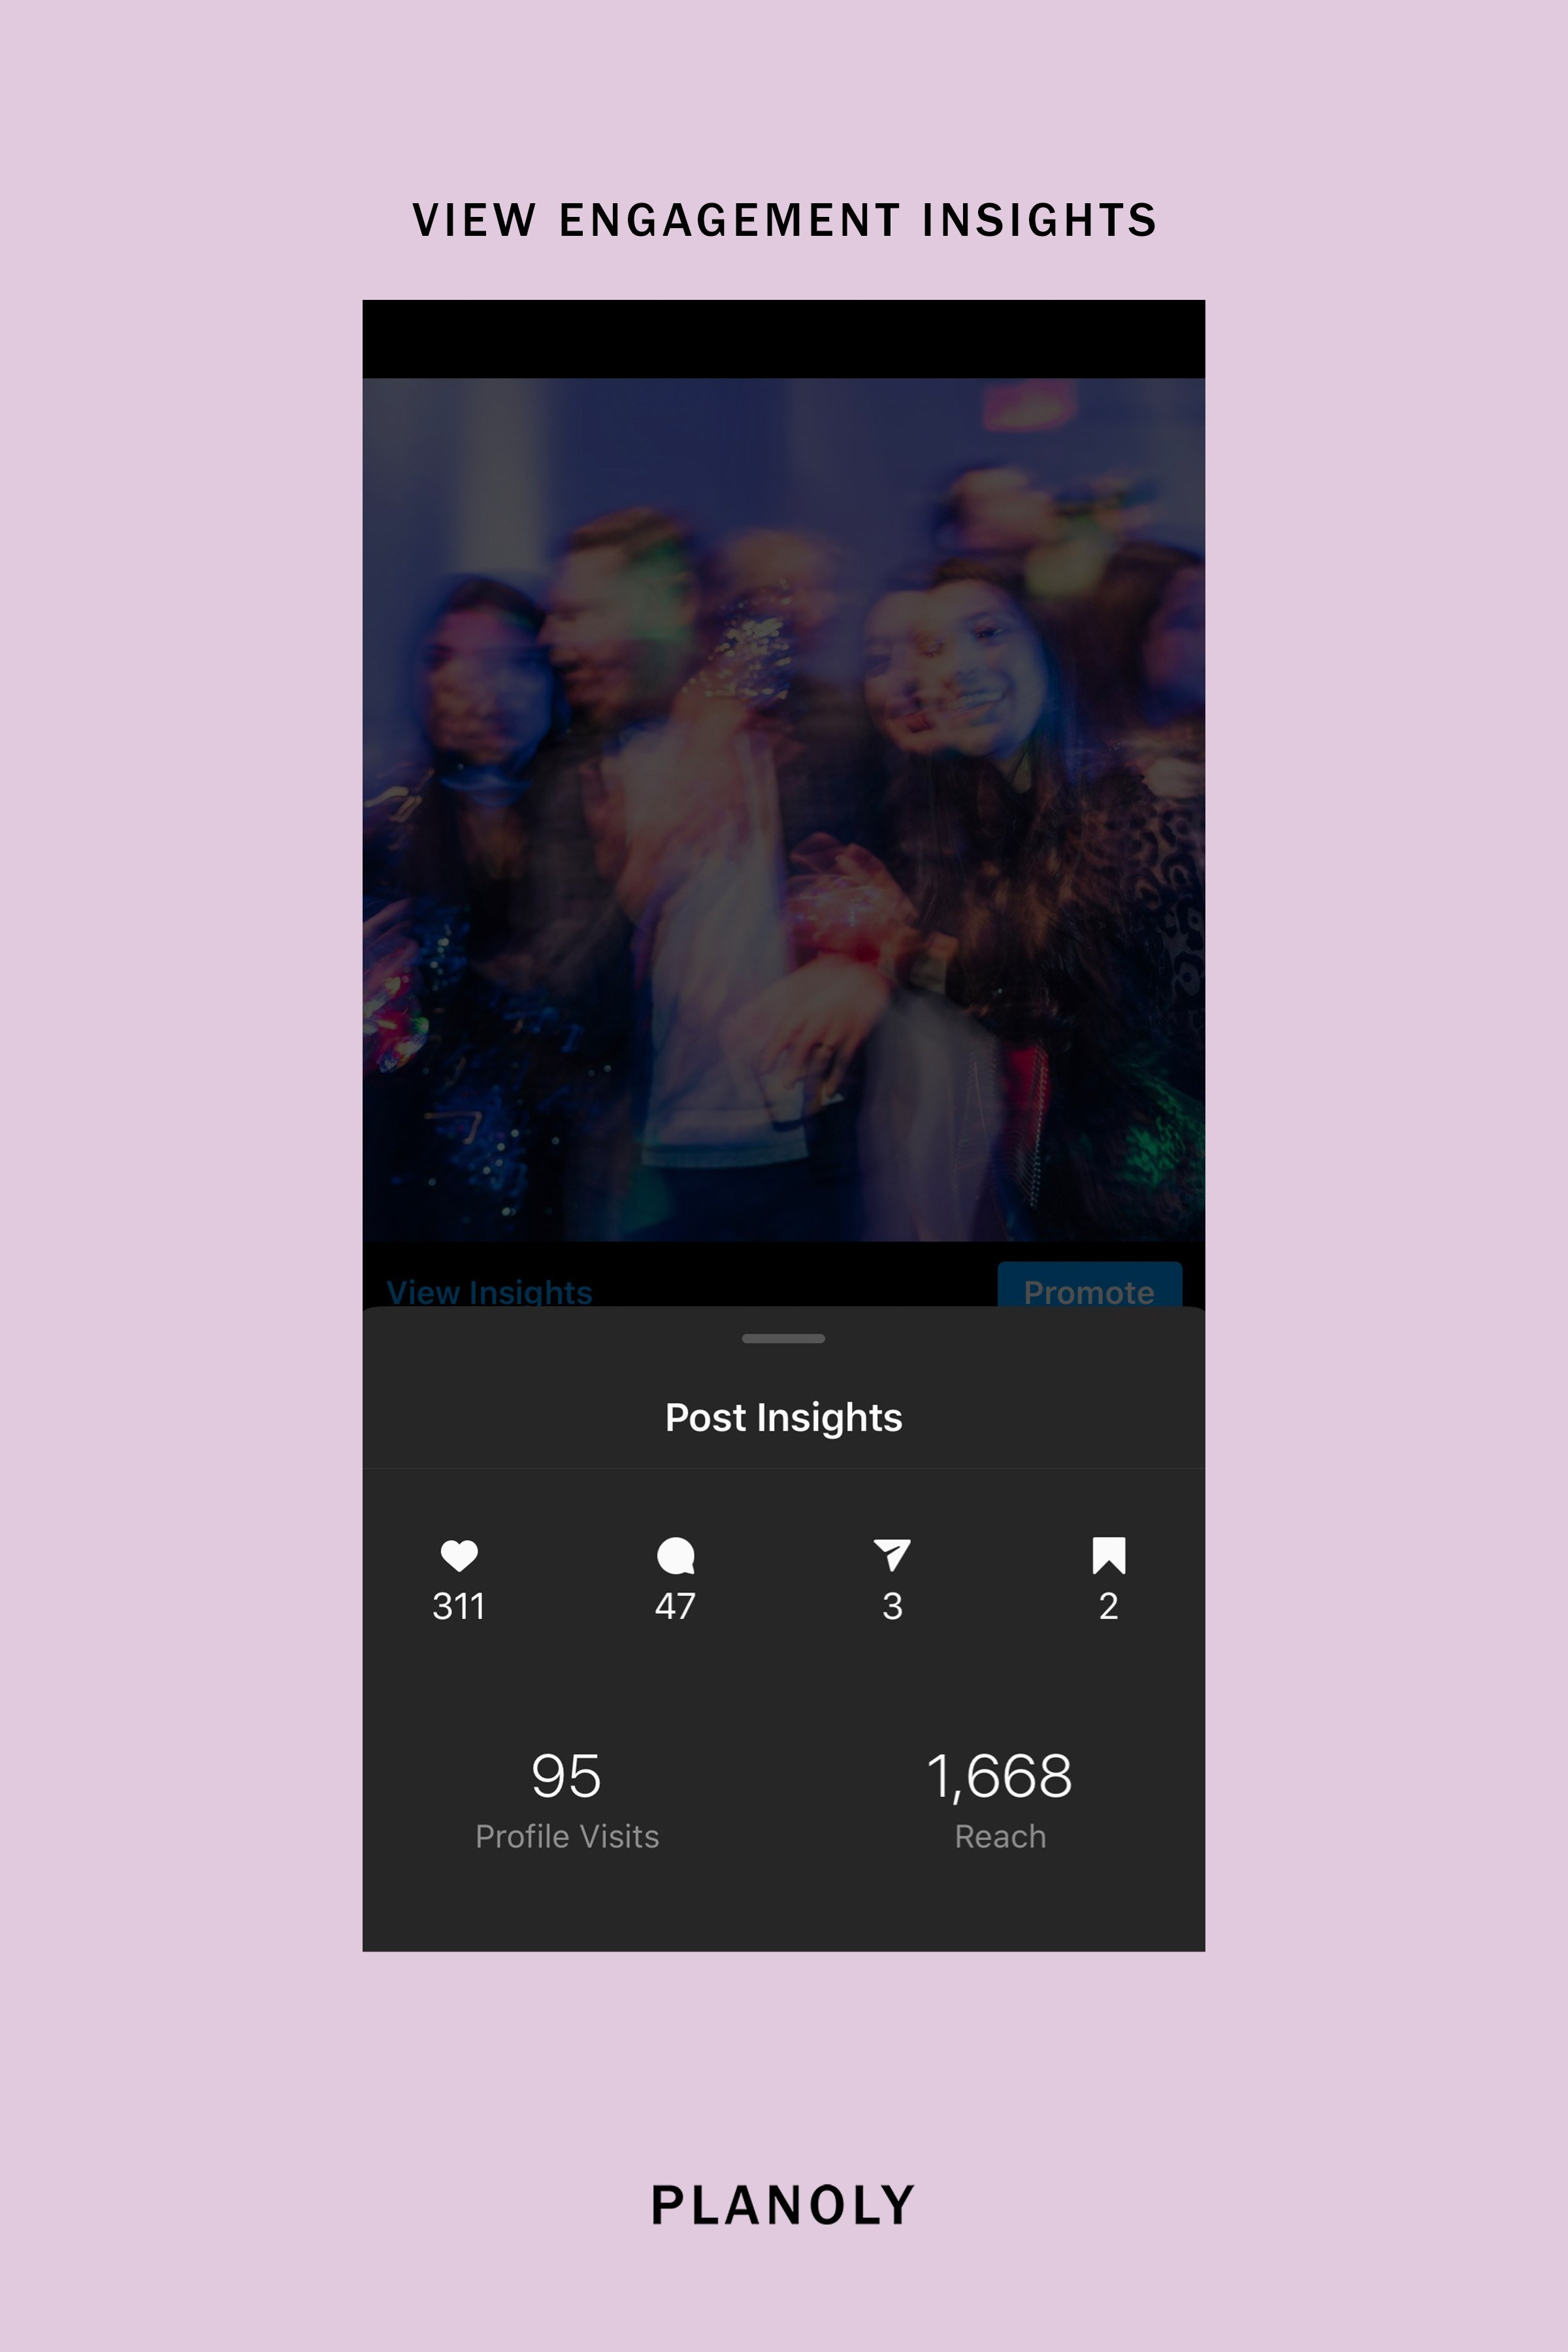 PLANOLY-Blog-Post-The-Ultimate-Guide-to-Writing-Better-Instagram-Captions-Image-8